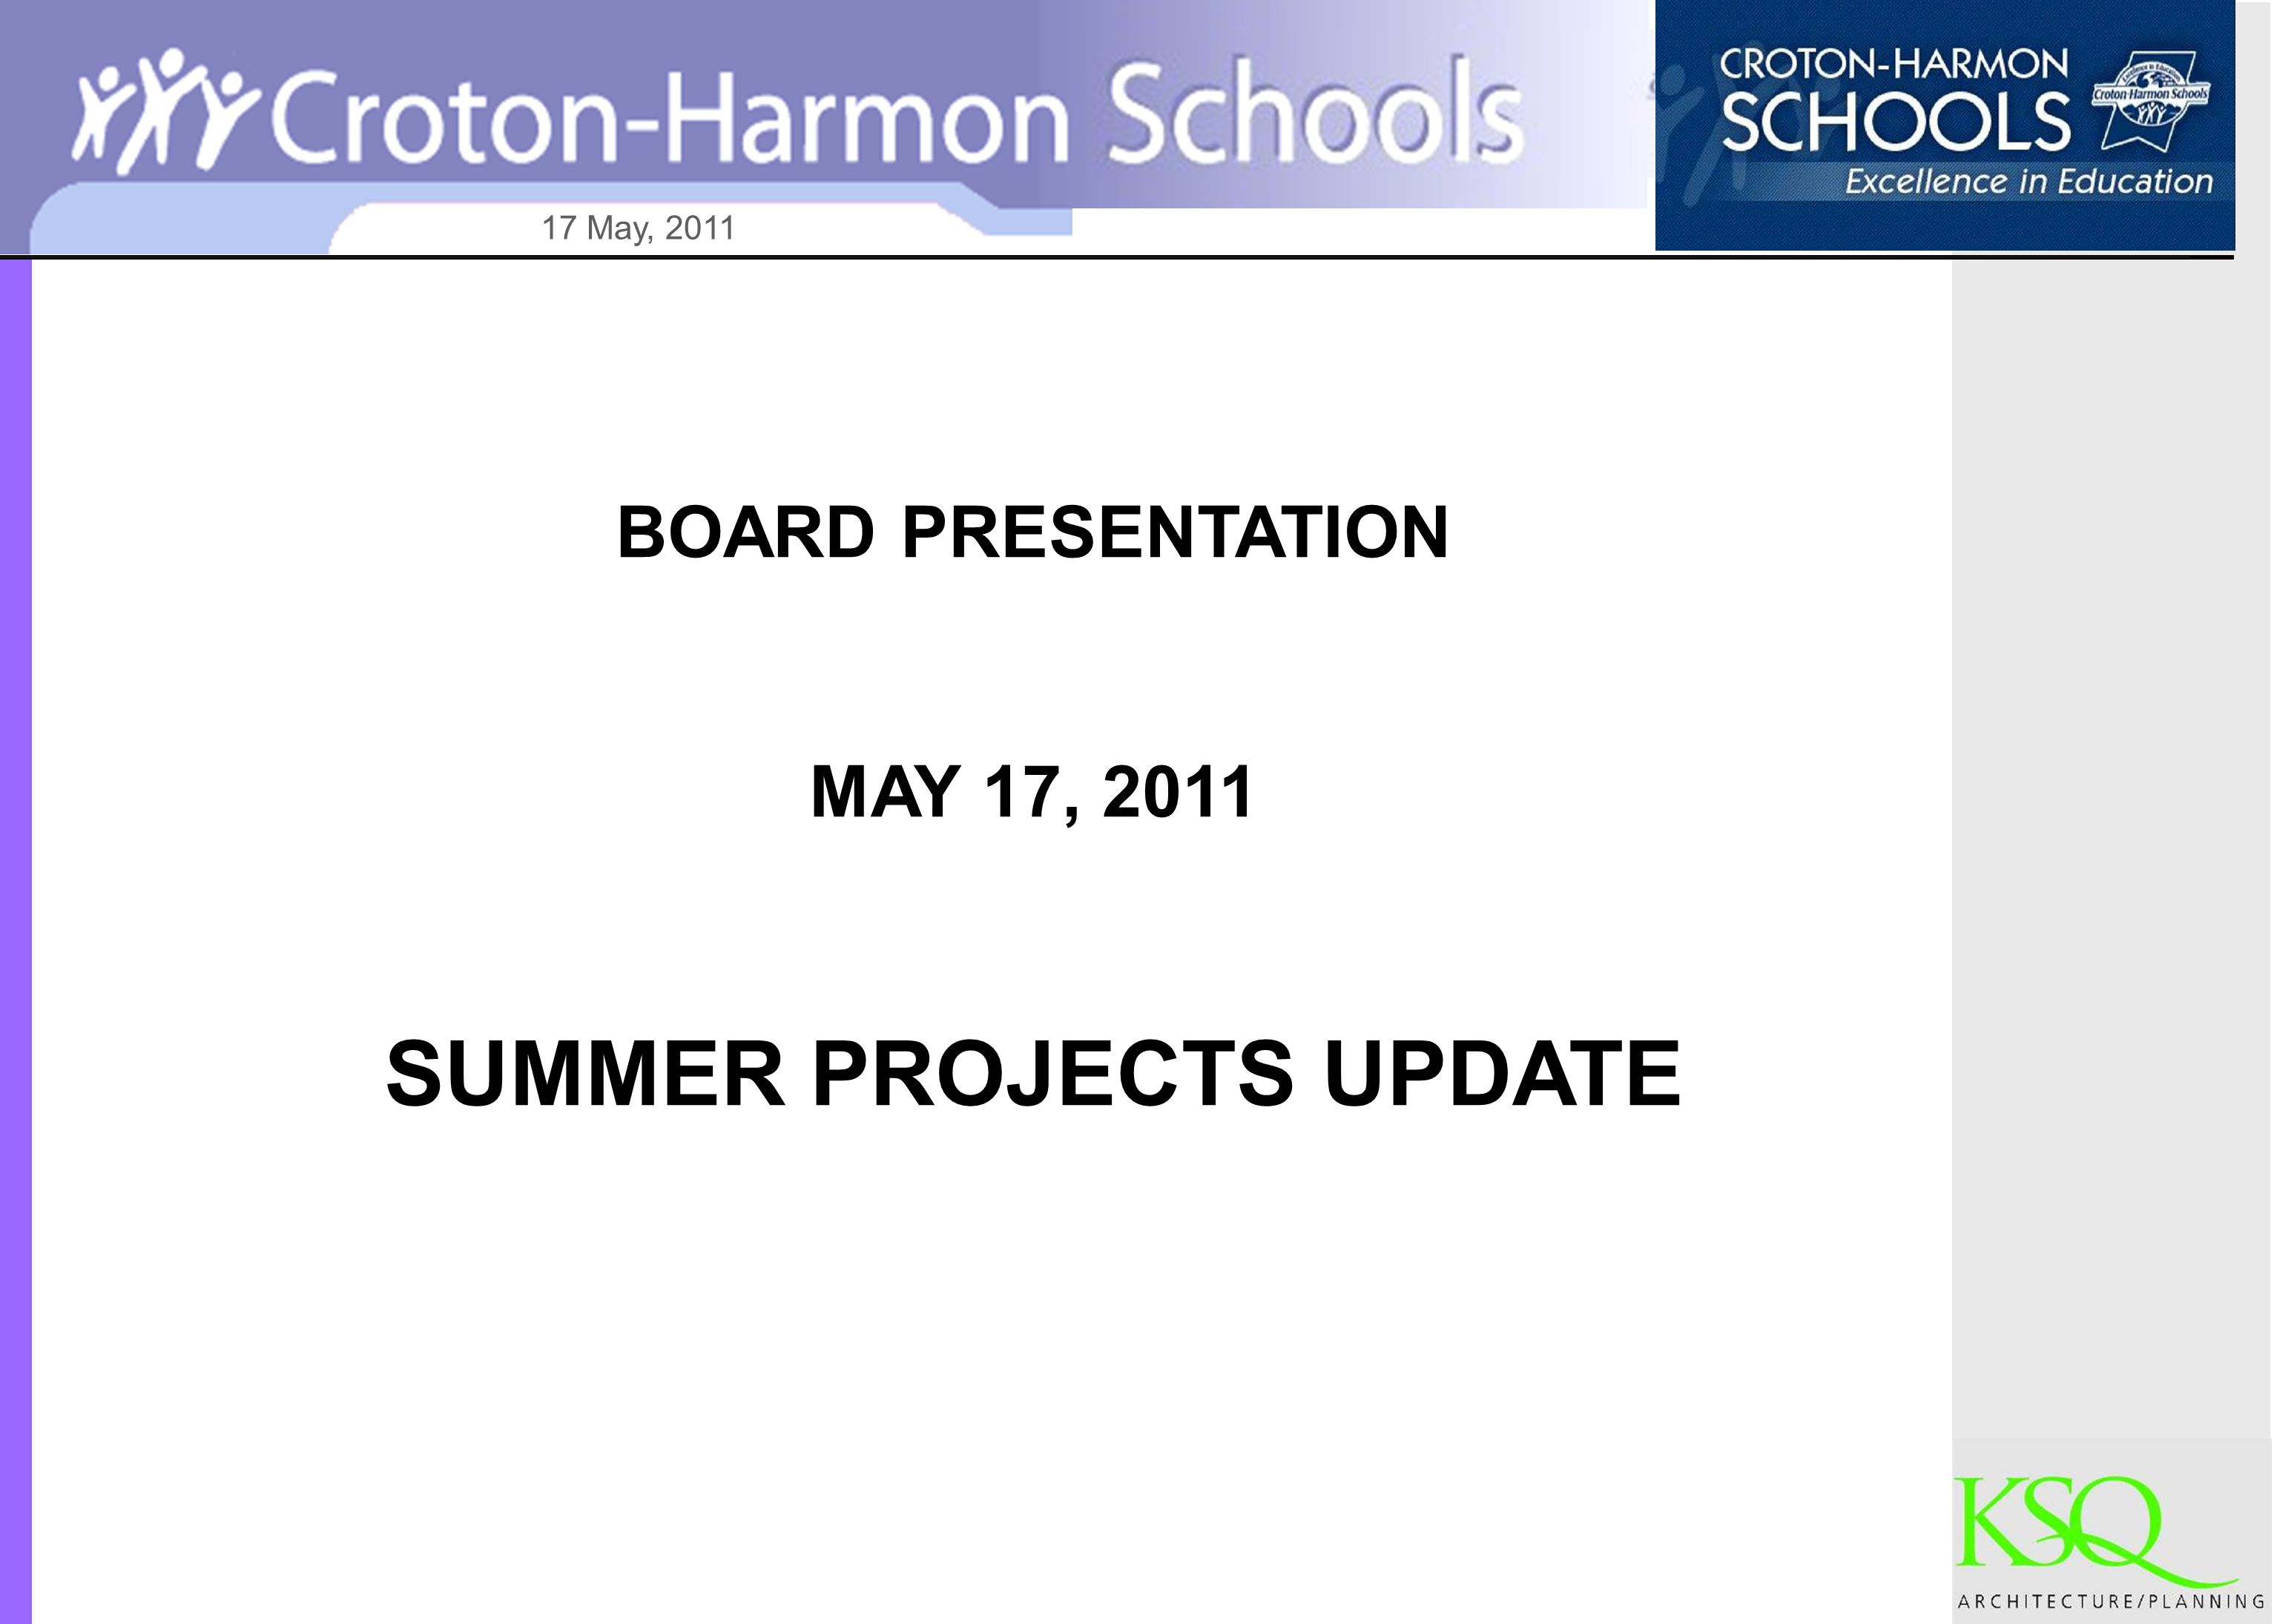 17 May, 2011 BOARD PRESENTATION MAY 17, 2011 SUMMER PROJECTS UPDATE